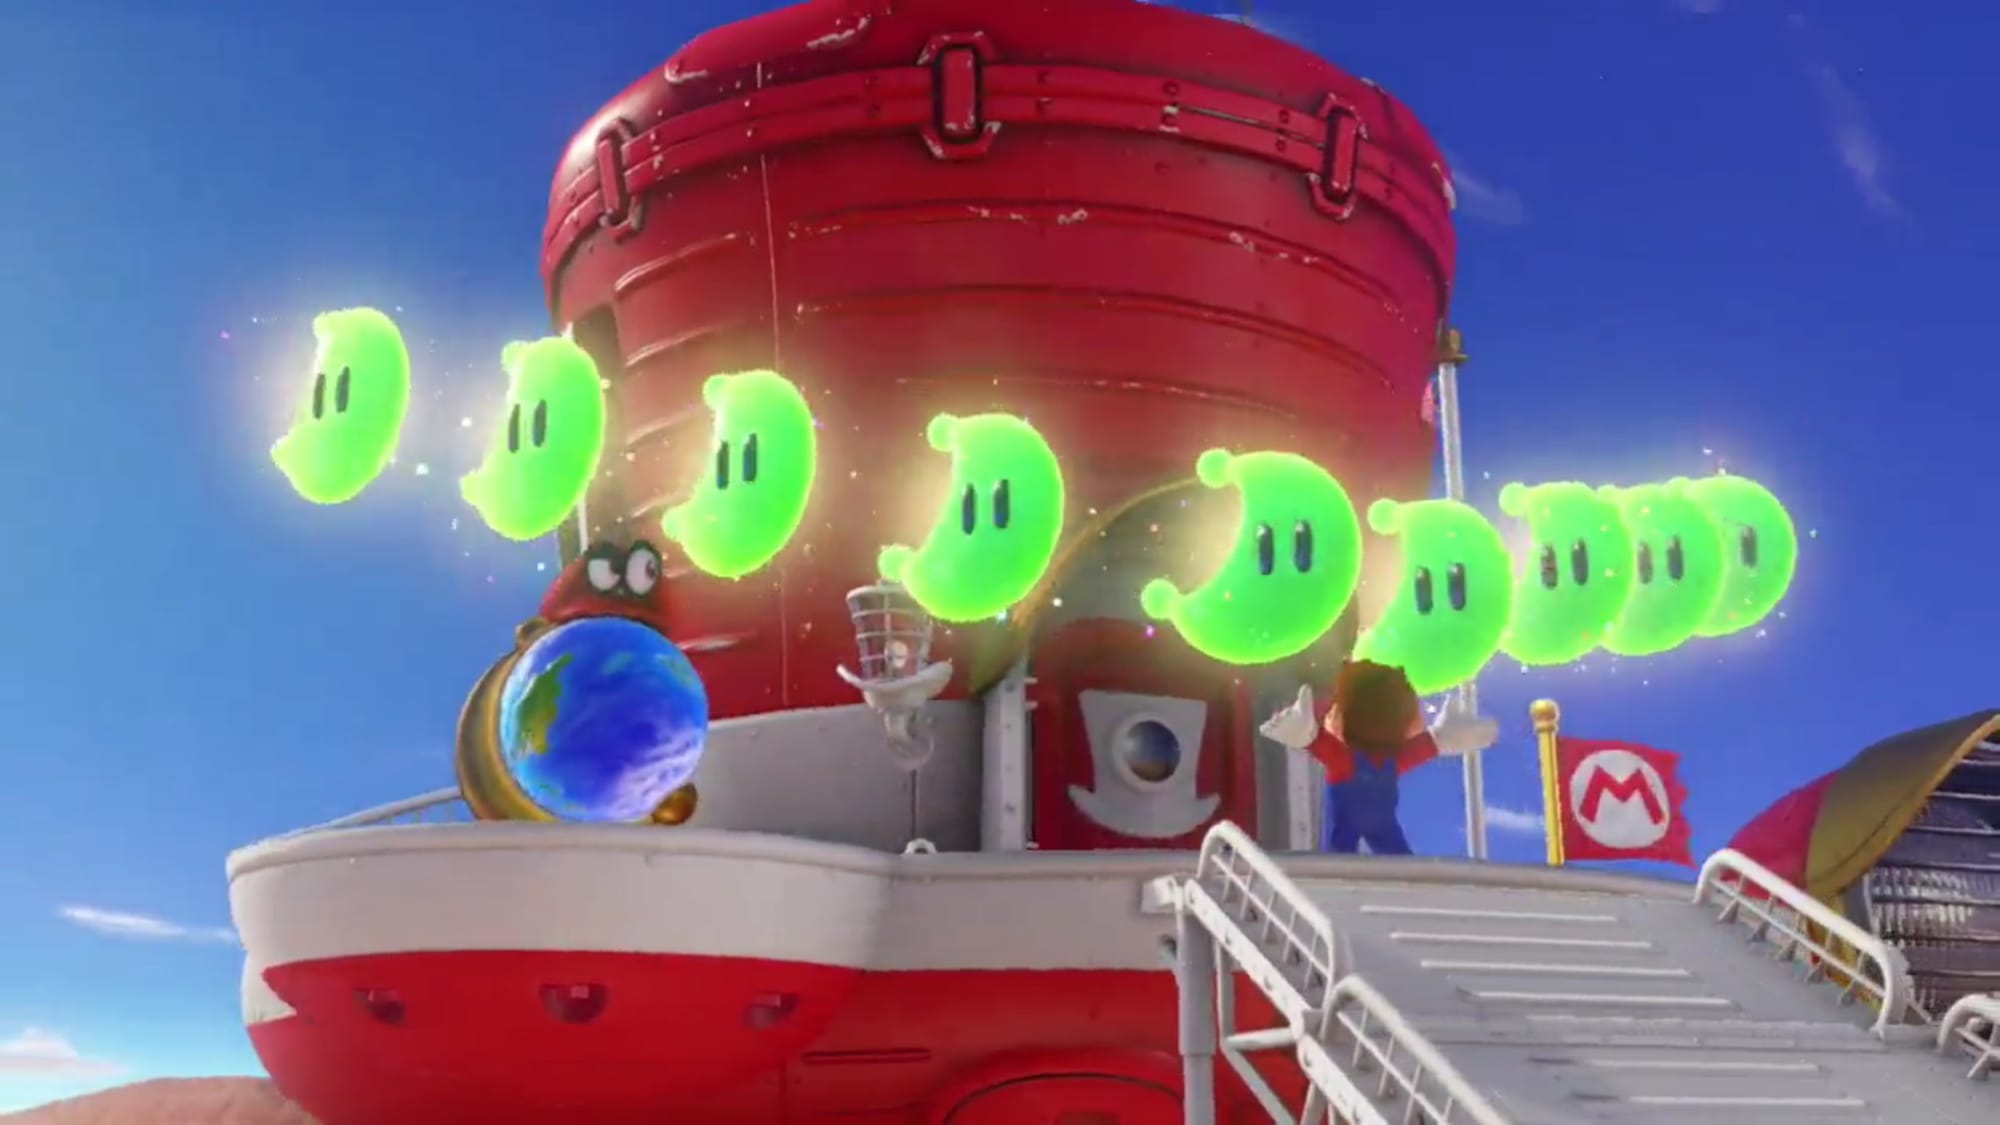 What Happens If You Collect All The Power Moons In Super Mario